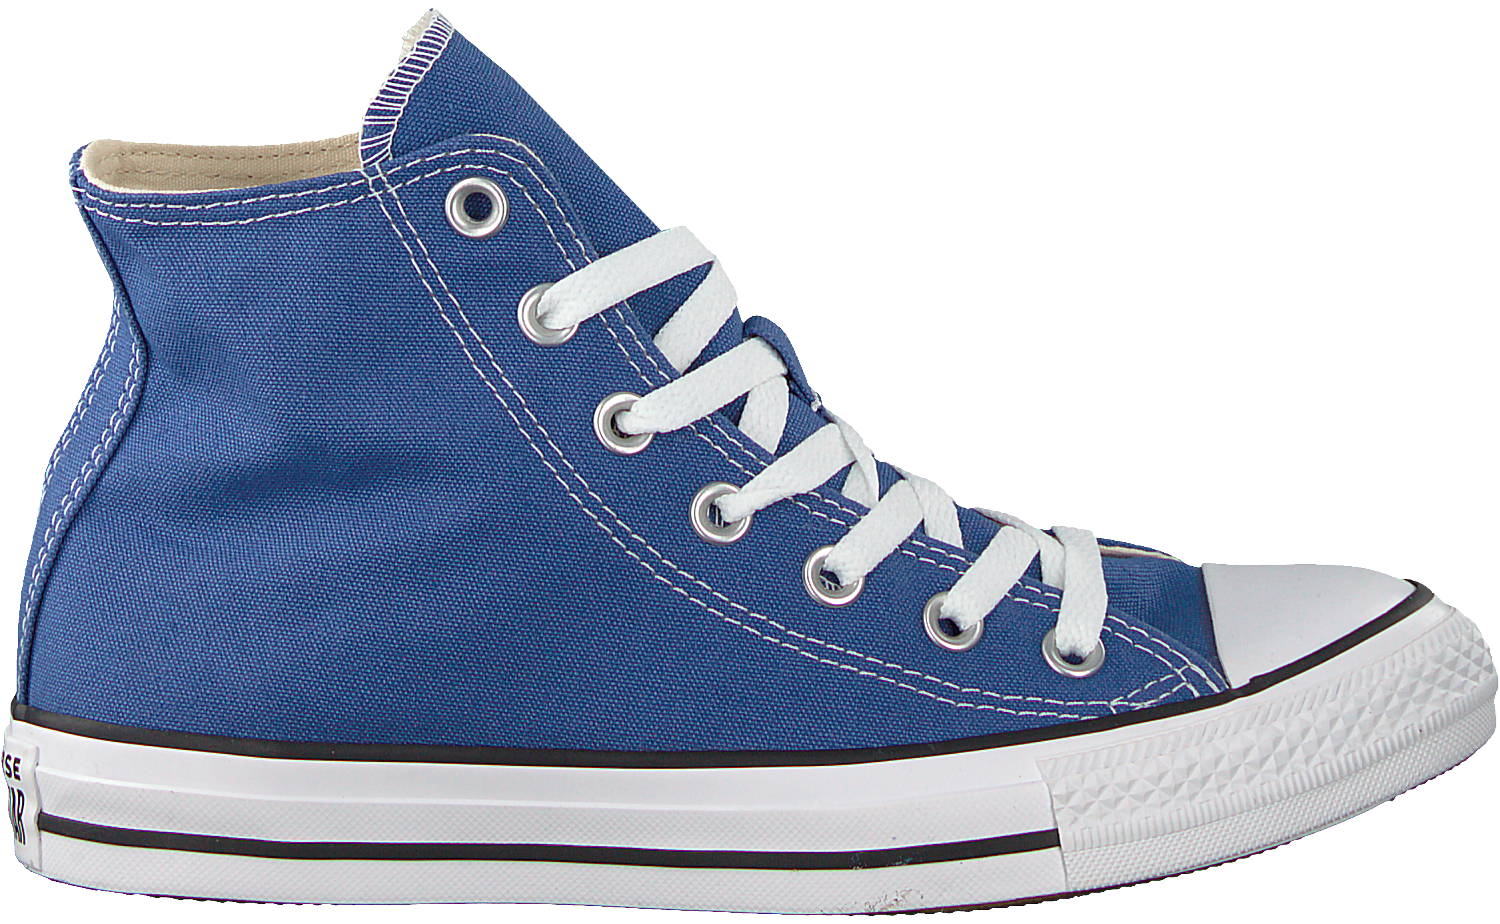 f026fbbfbb0 Blauwe CONVERSE Sneakers CHUCK TAYLOR ALL STAR HI DAMES - large. Next